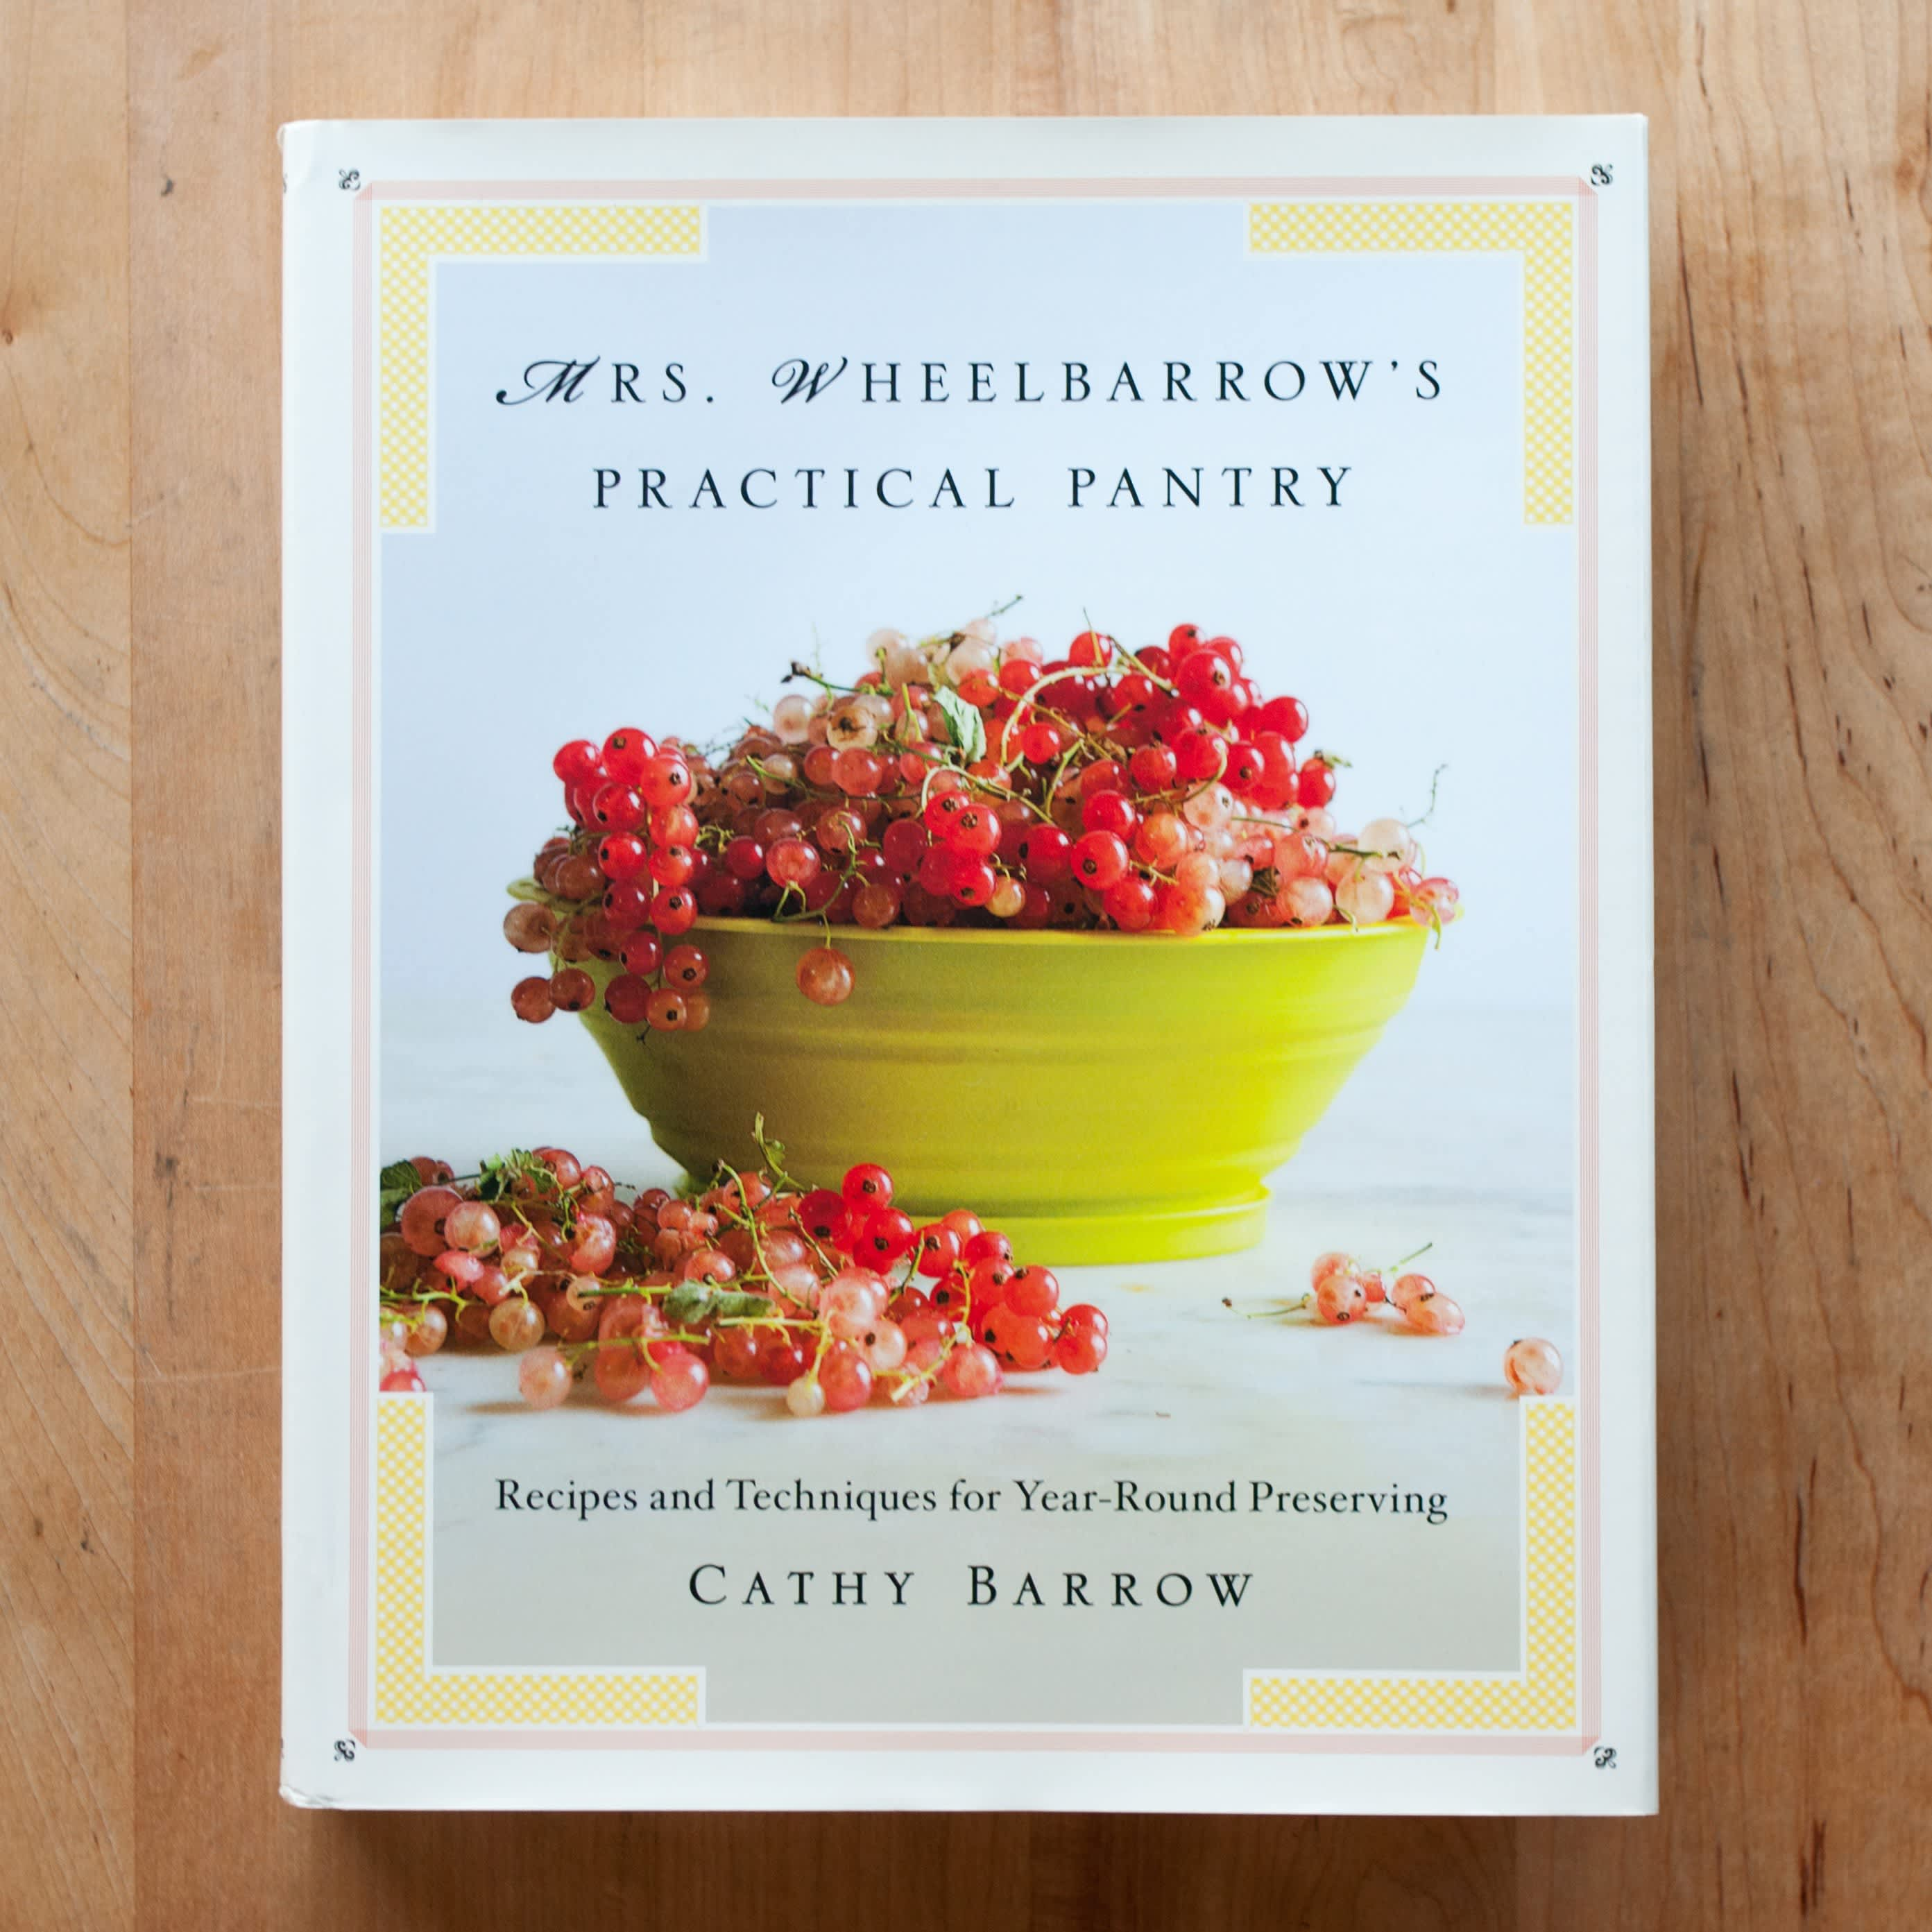 Mrs. Wheelbarrow's Practical Pantry Is Required Reading Material for Passionate Home Preservers: gallery image 1